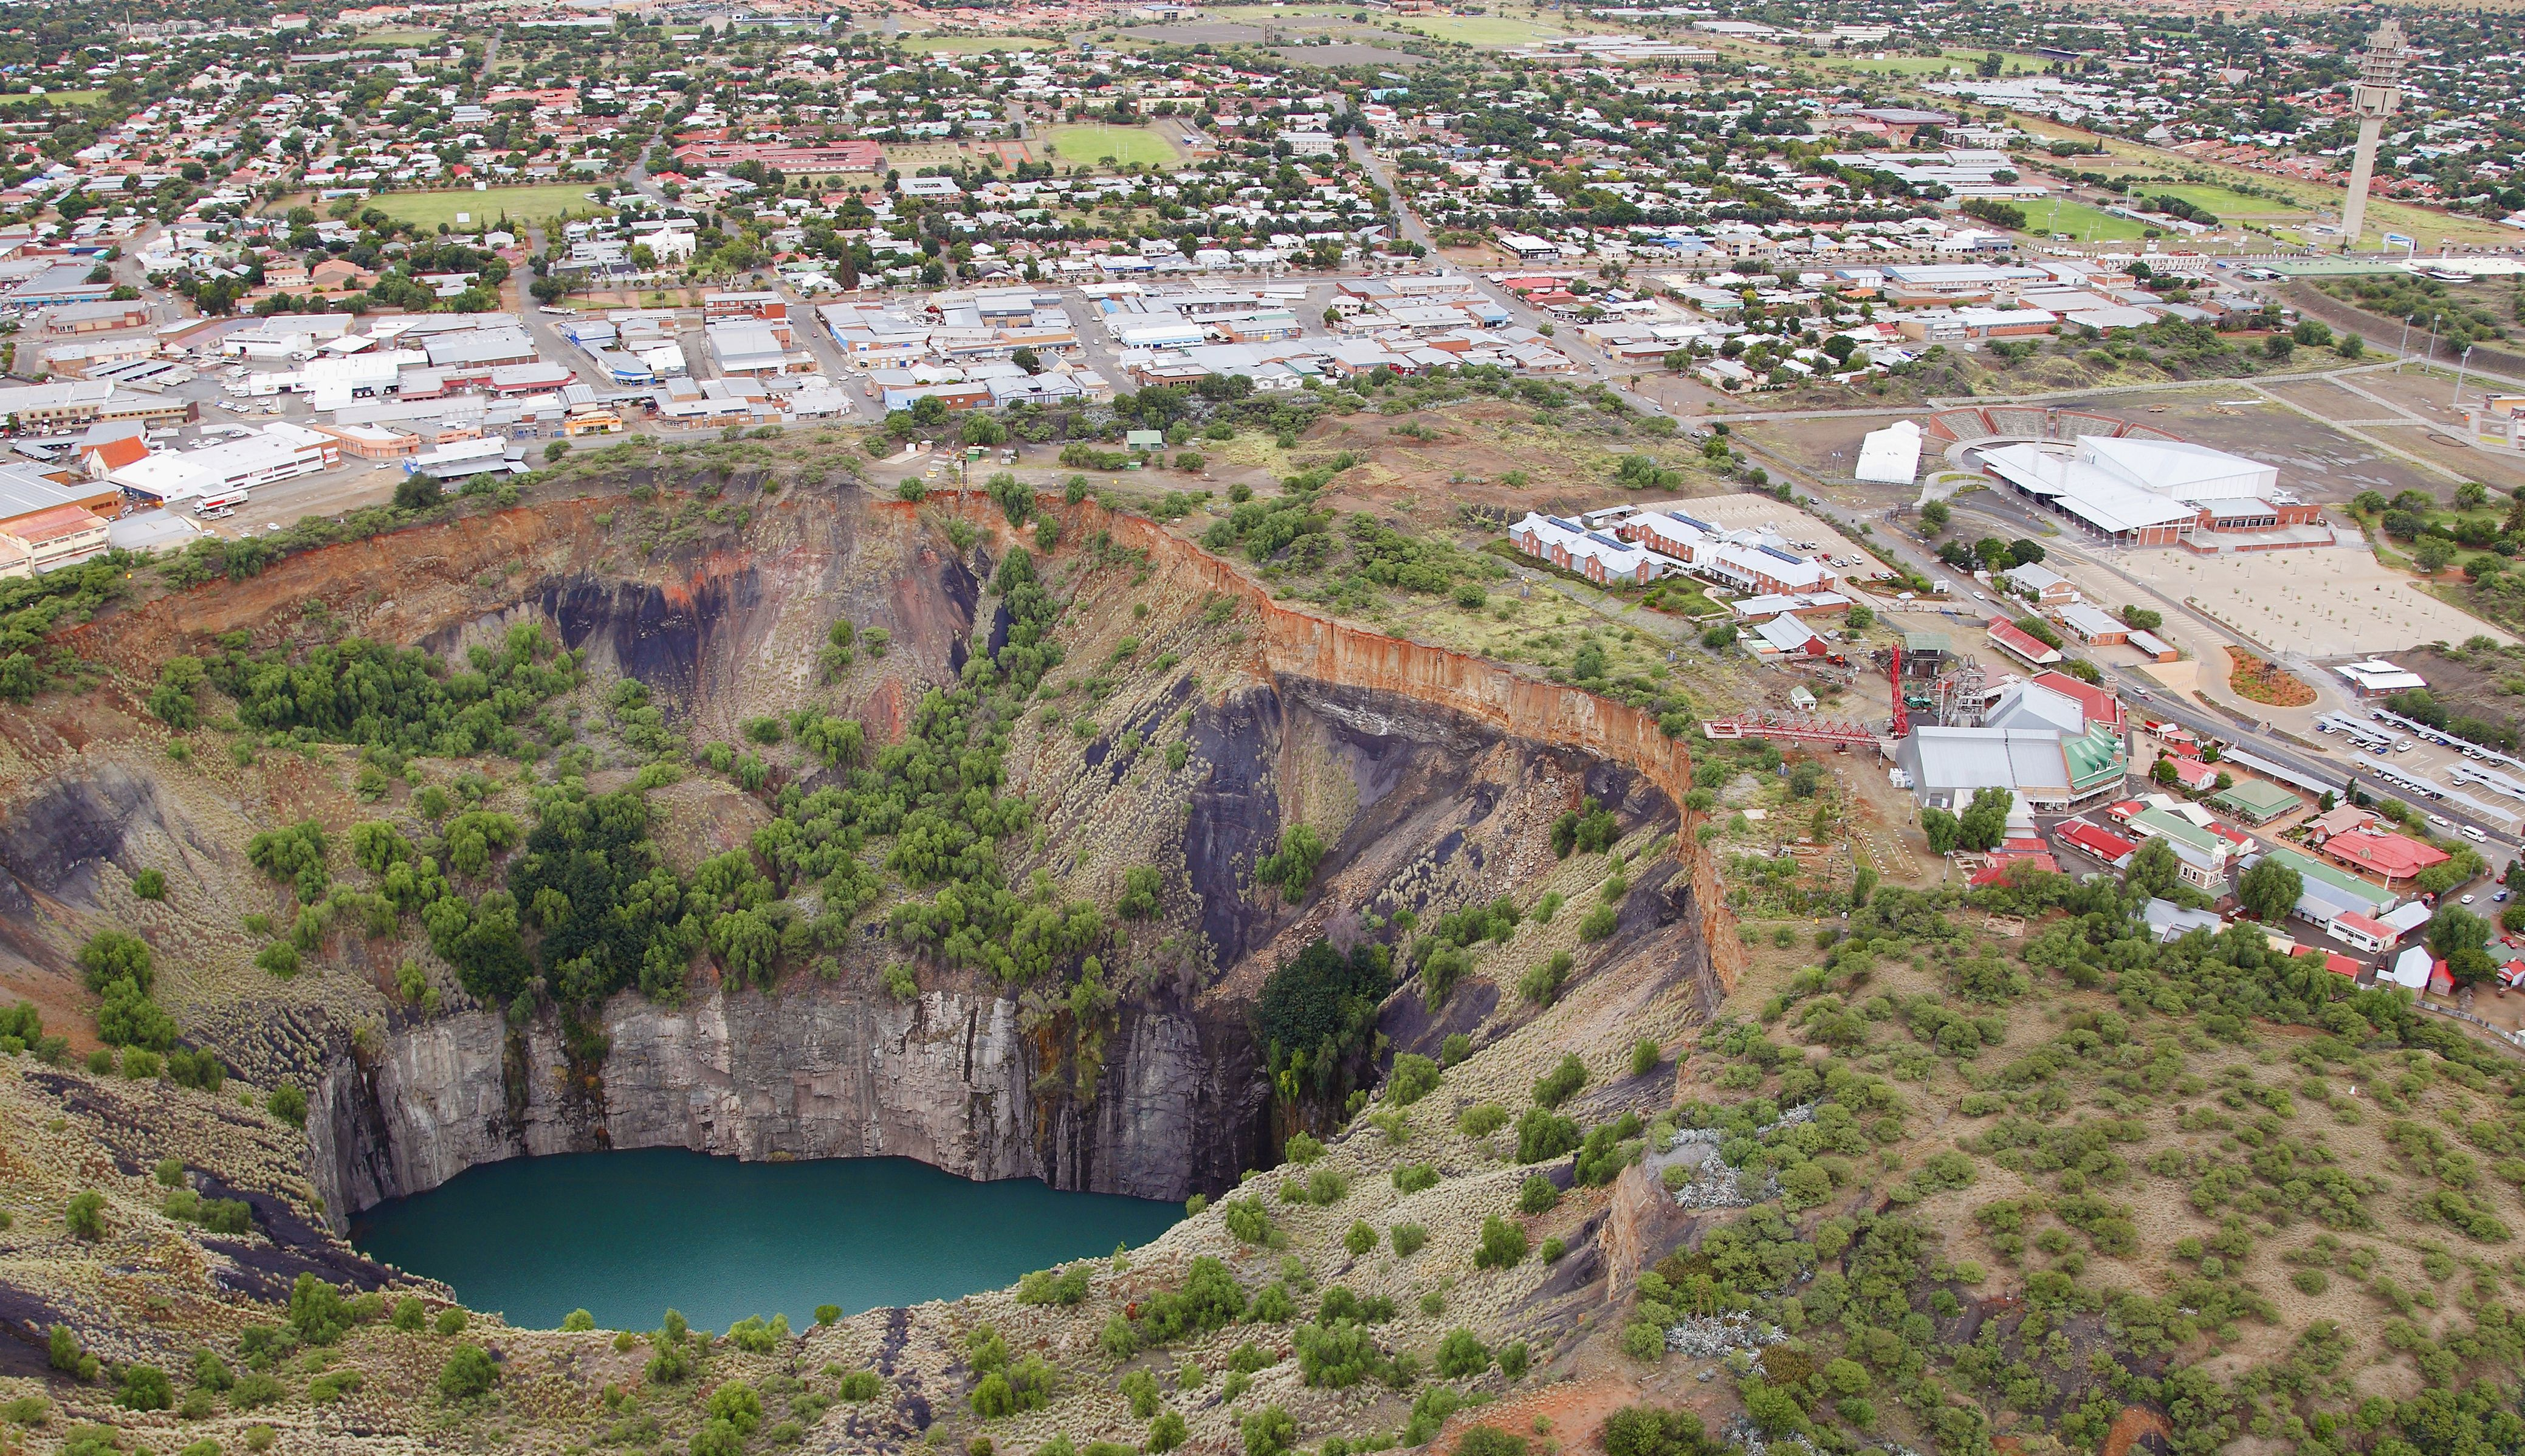 An aerial view of the big hole with Kimberley in the background. Kimberley Northern Cape Province South Africa.